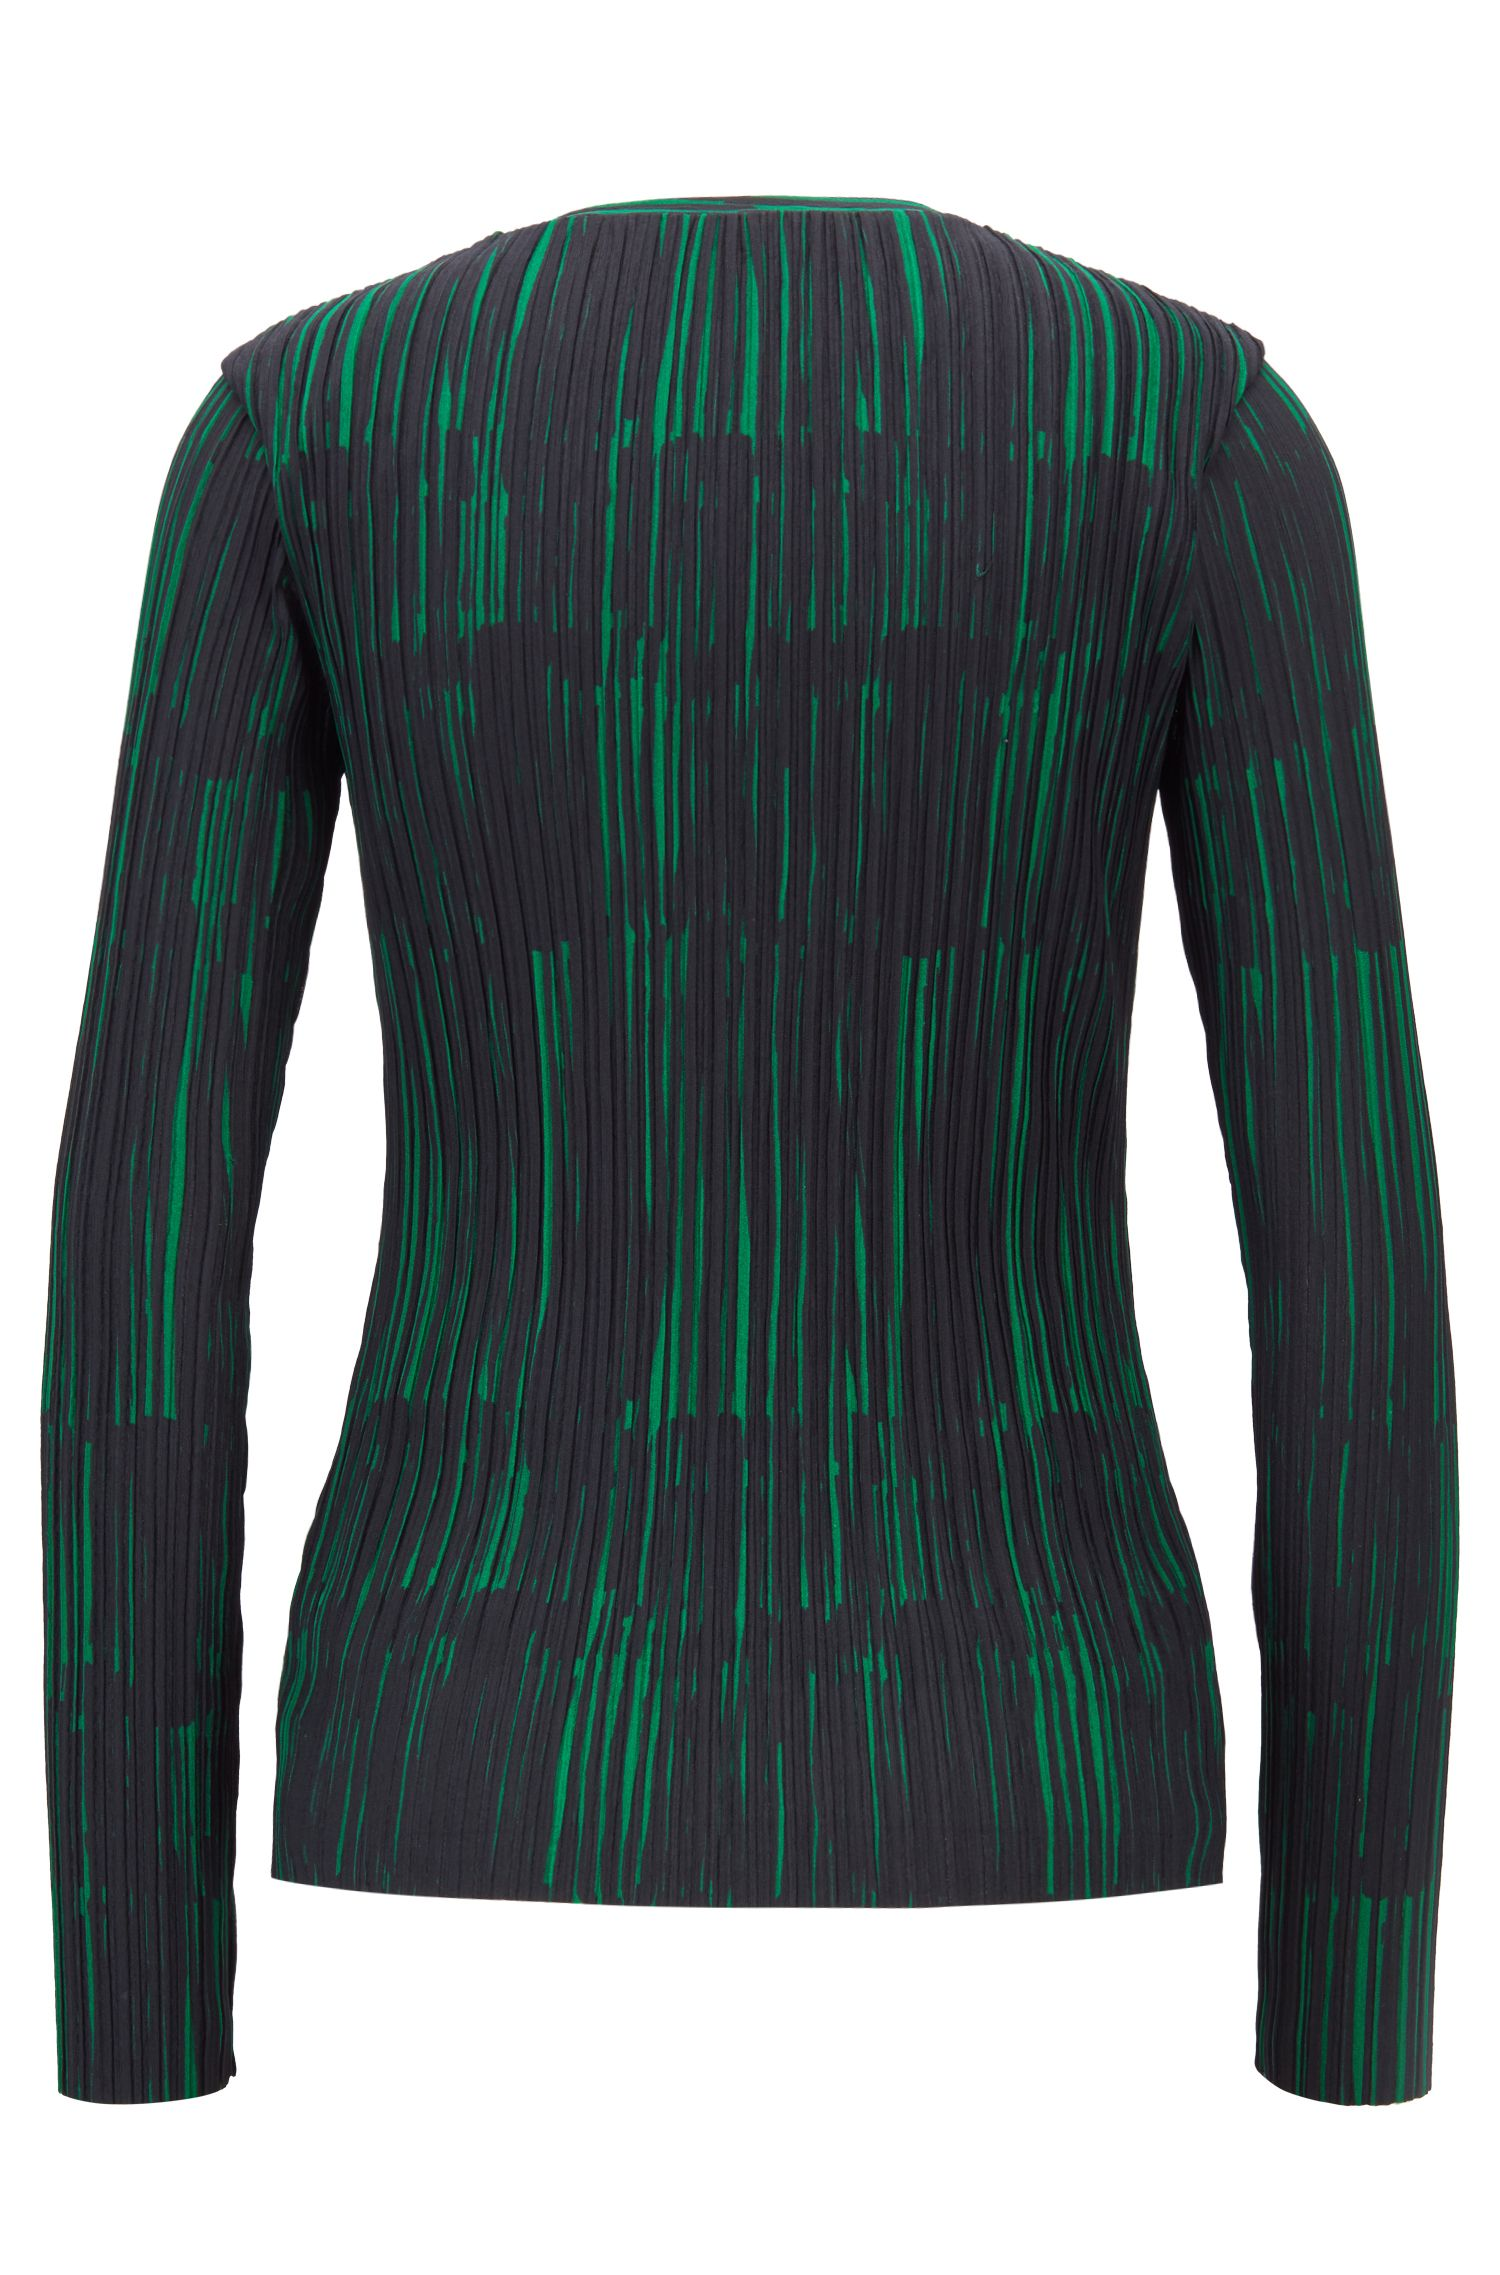 Slim-fit top with plissé detail and collection print, Patterned